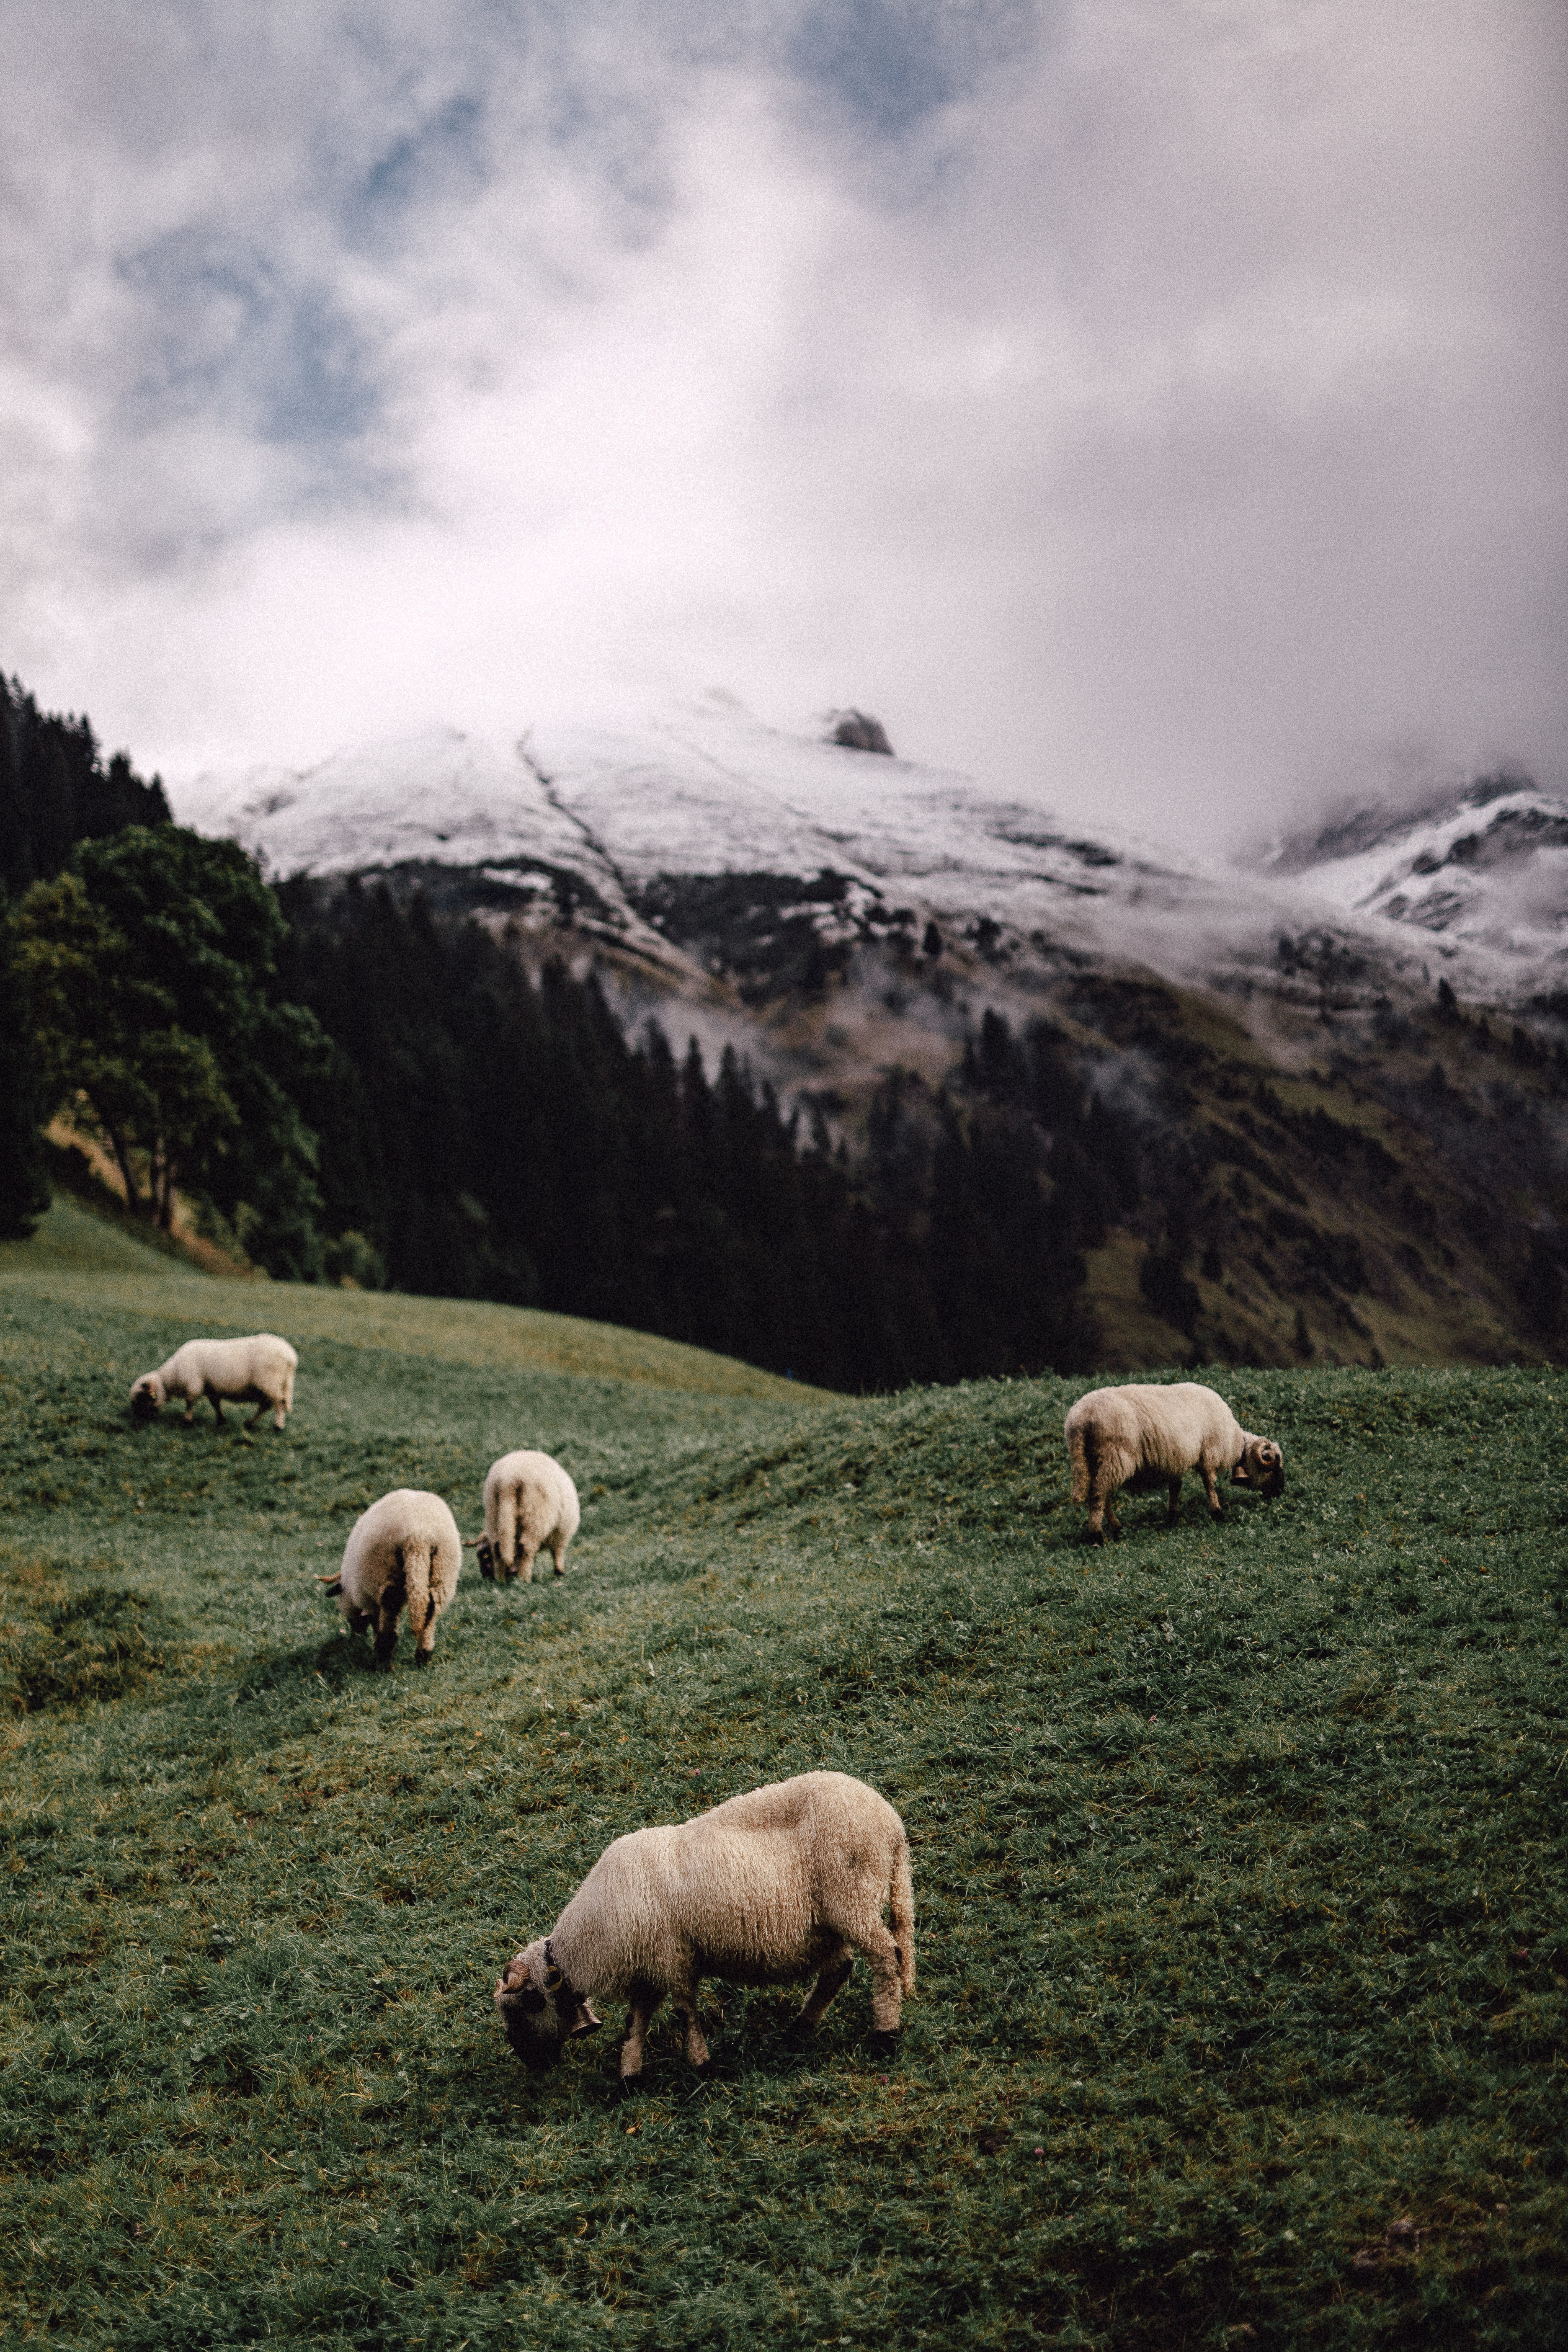 five white sheeps eating grass near mountains during daytime